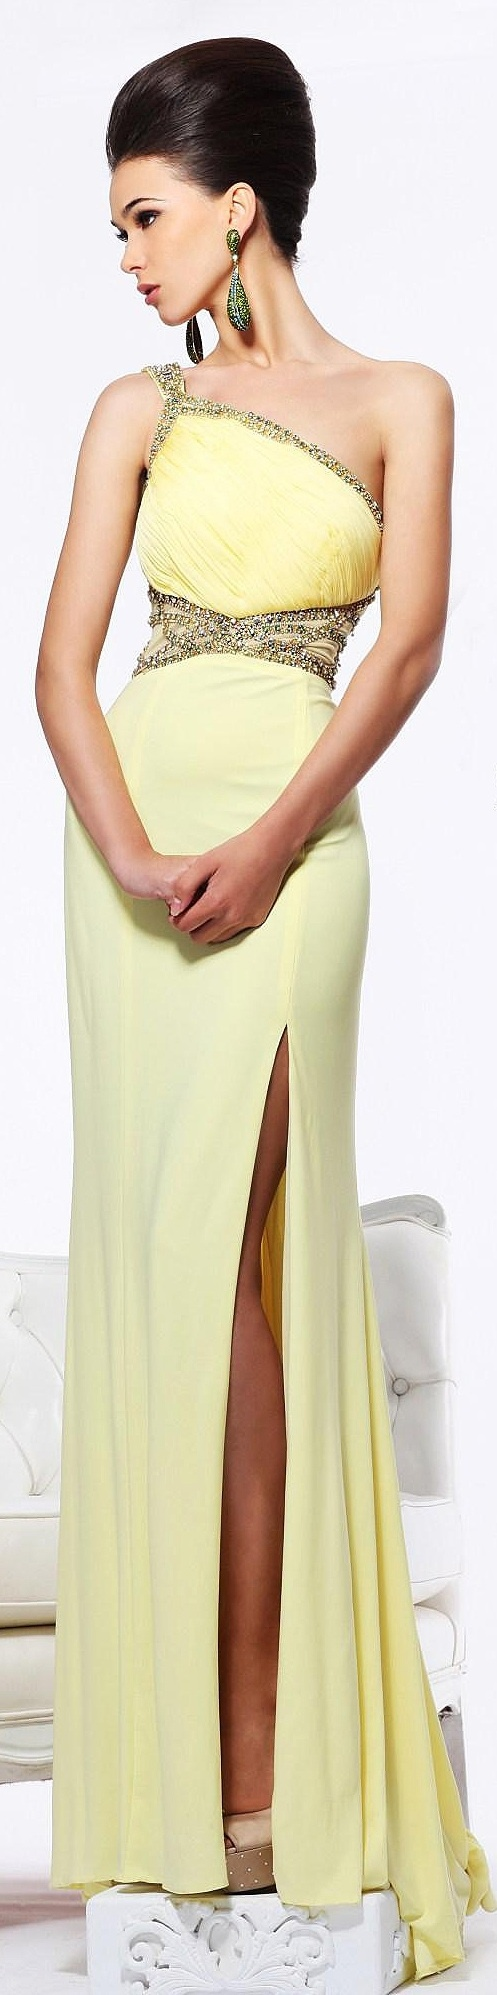 Sherri hill yellow grecian style gown evening dresses